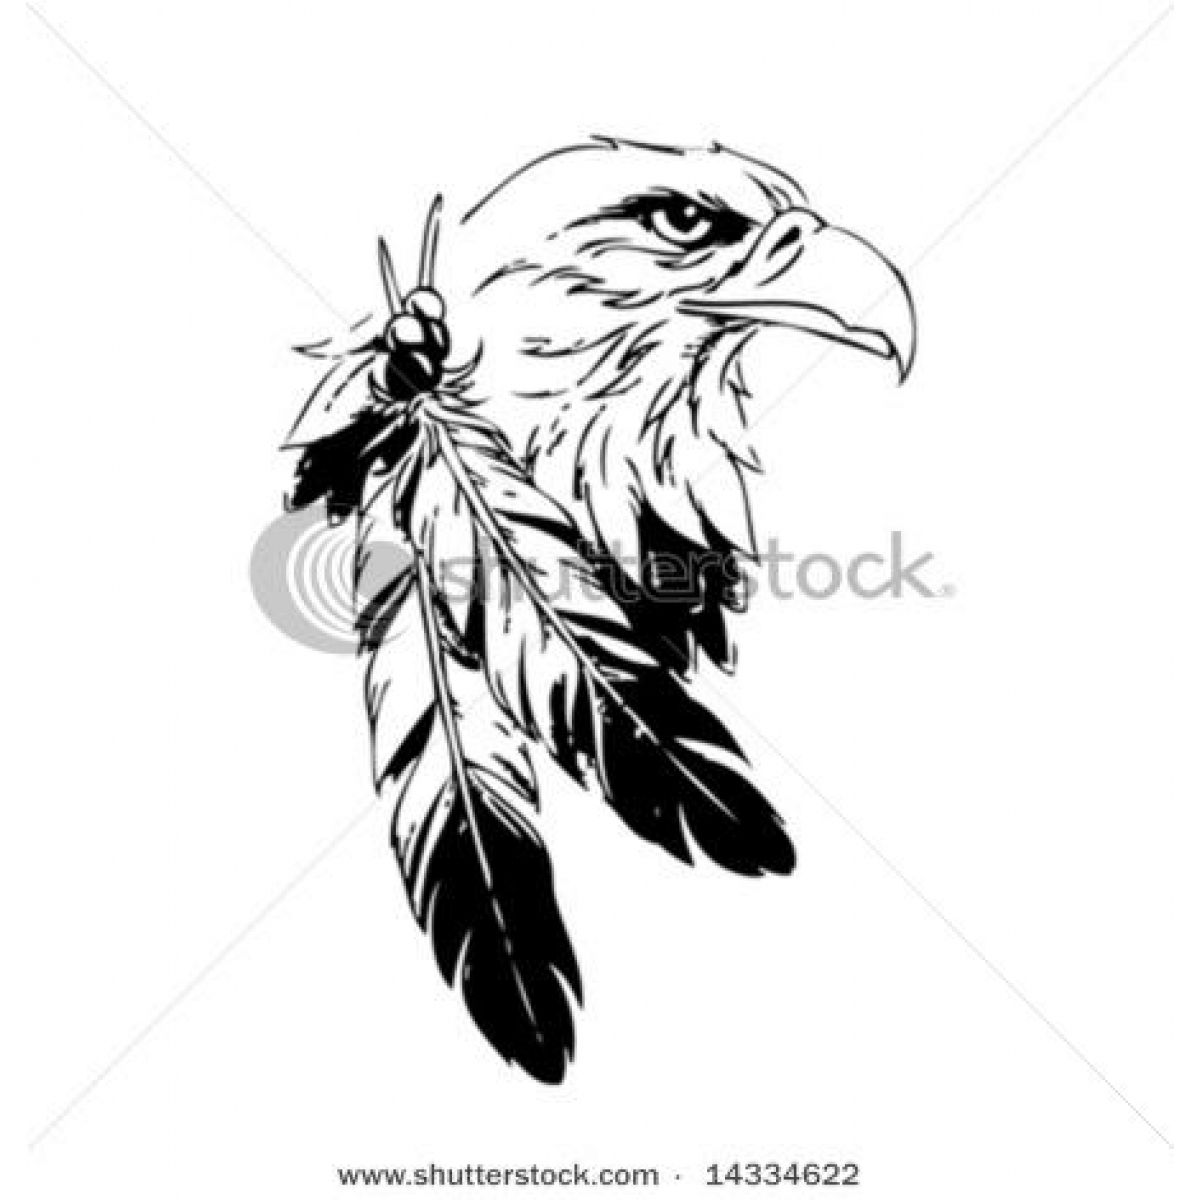 Native American Eagle Feather Outline Wiring Diagrams 2x30w Audio Amplifier With Stk465 Drawings Feathers On Animal Horn Rh Pinterest Com Fan Handles Indian